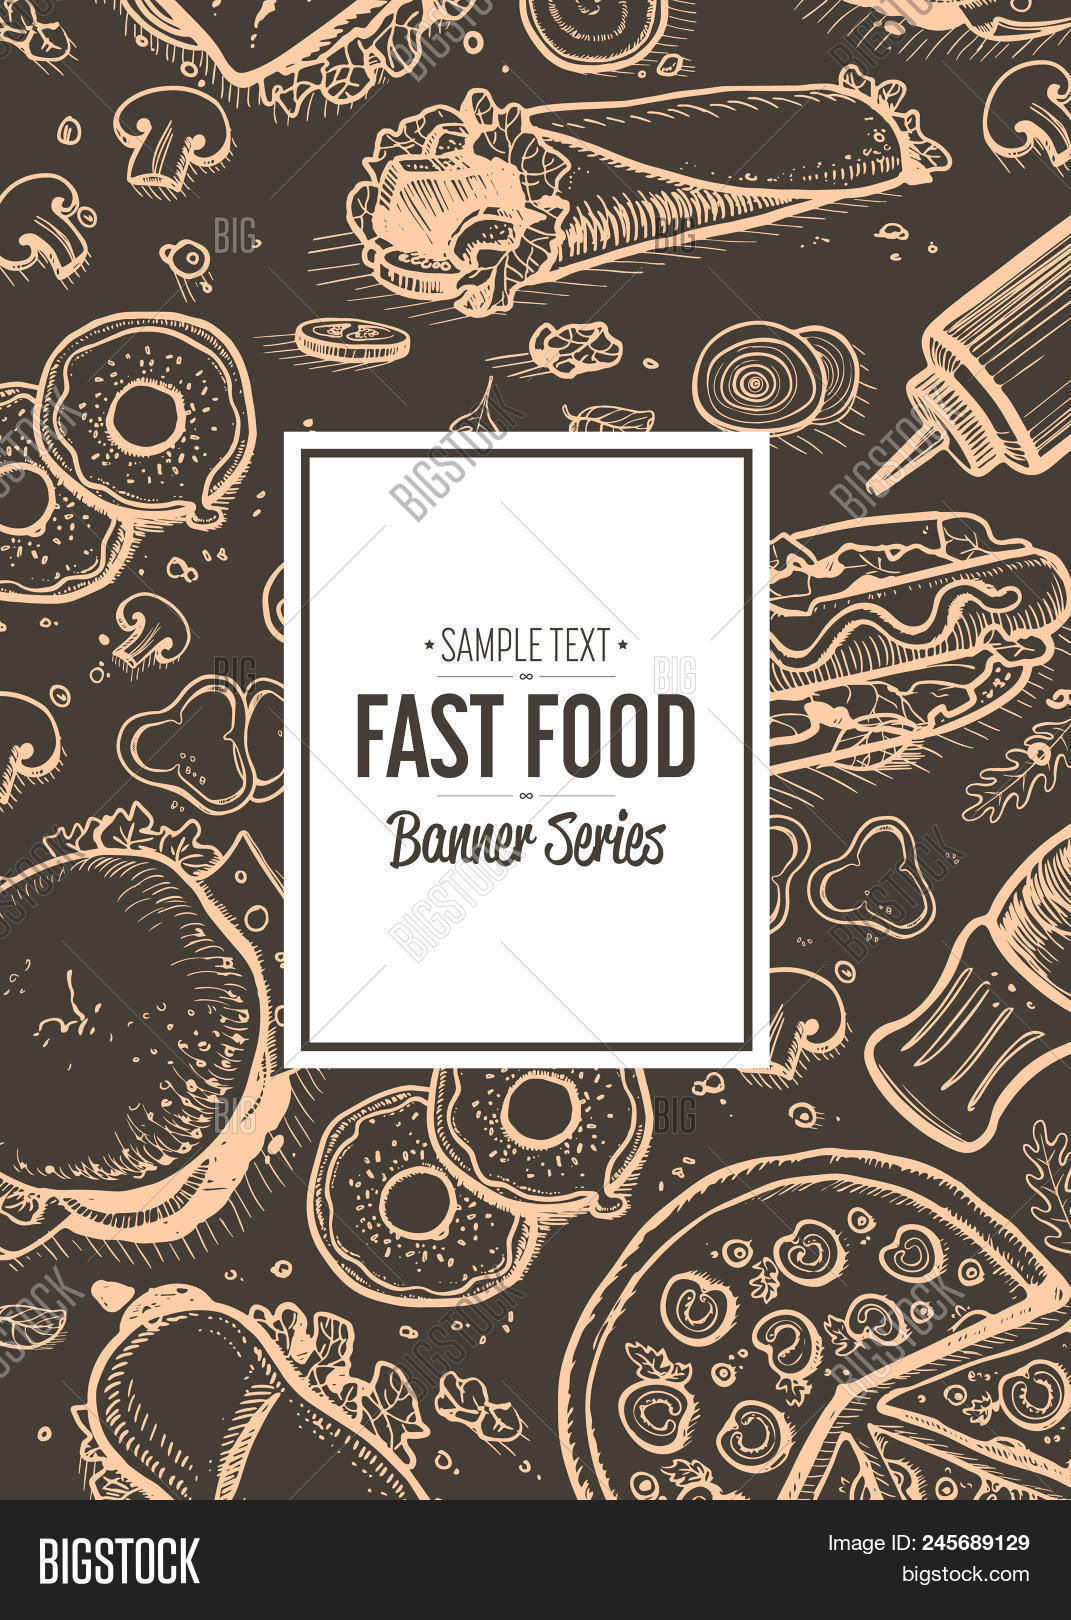 fast food cafe menu image & photo (free trial) | bigstock